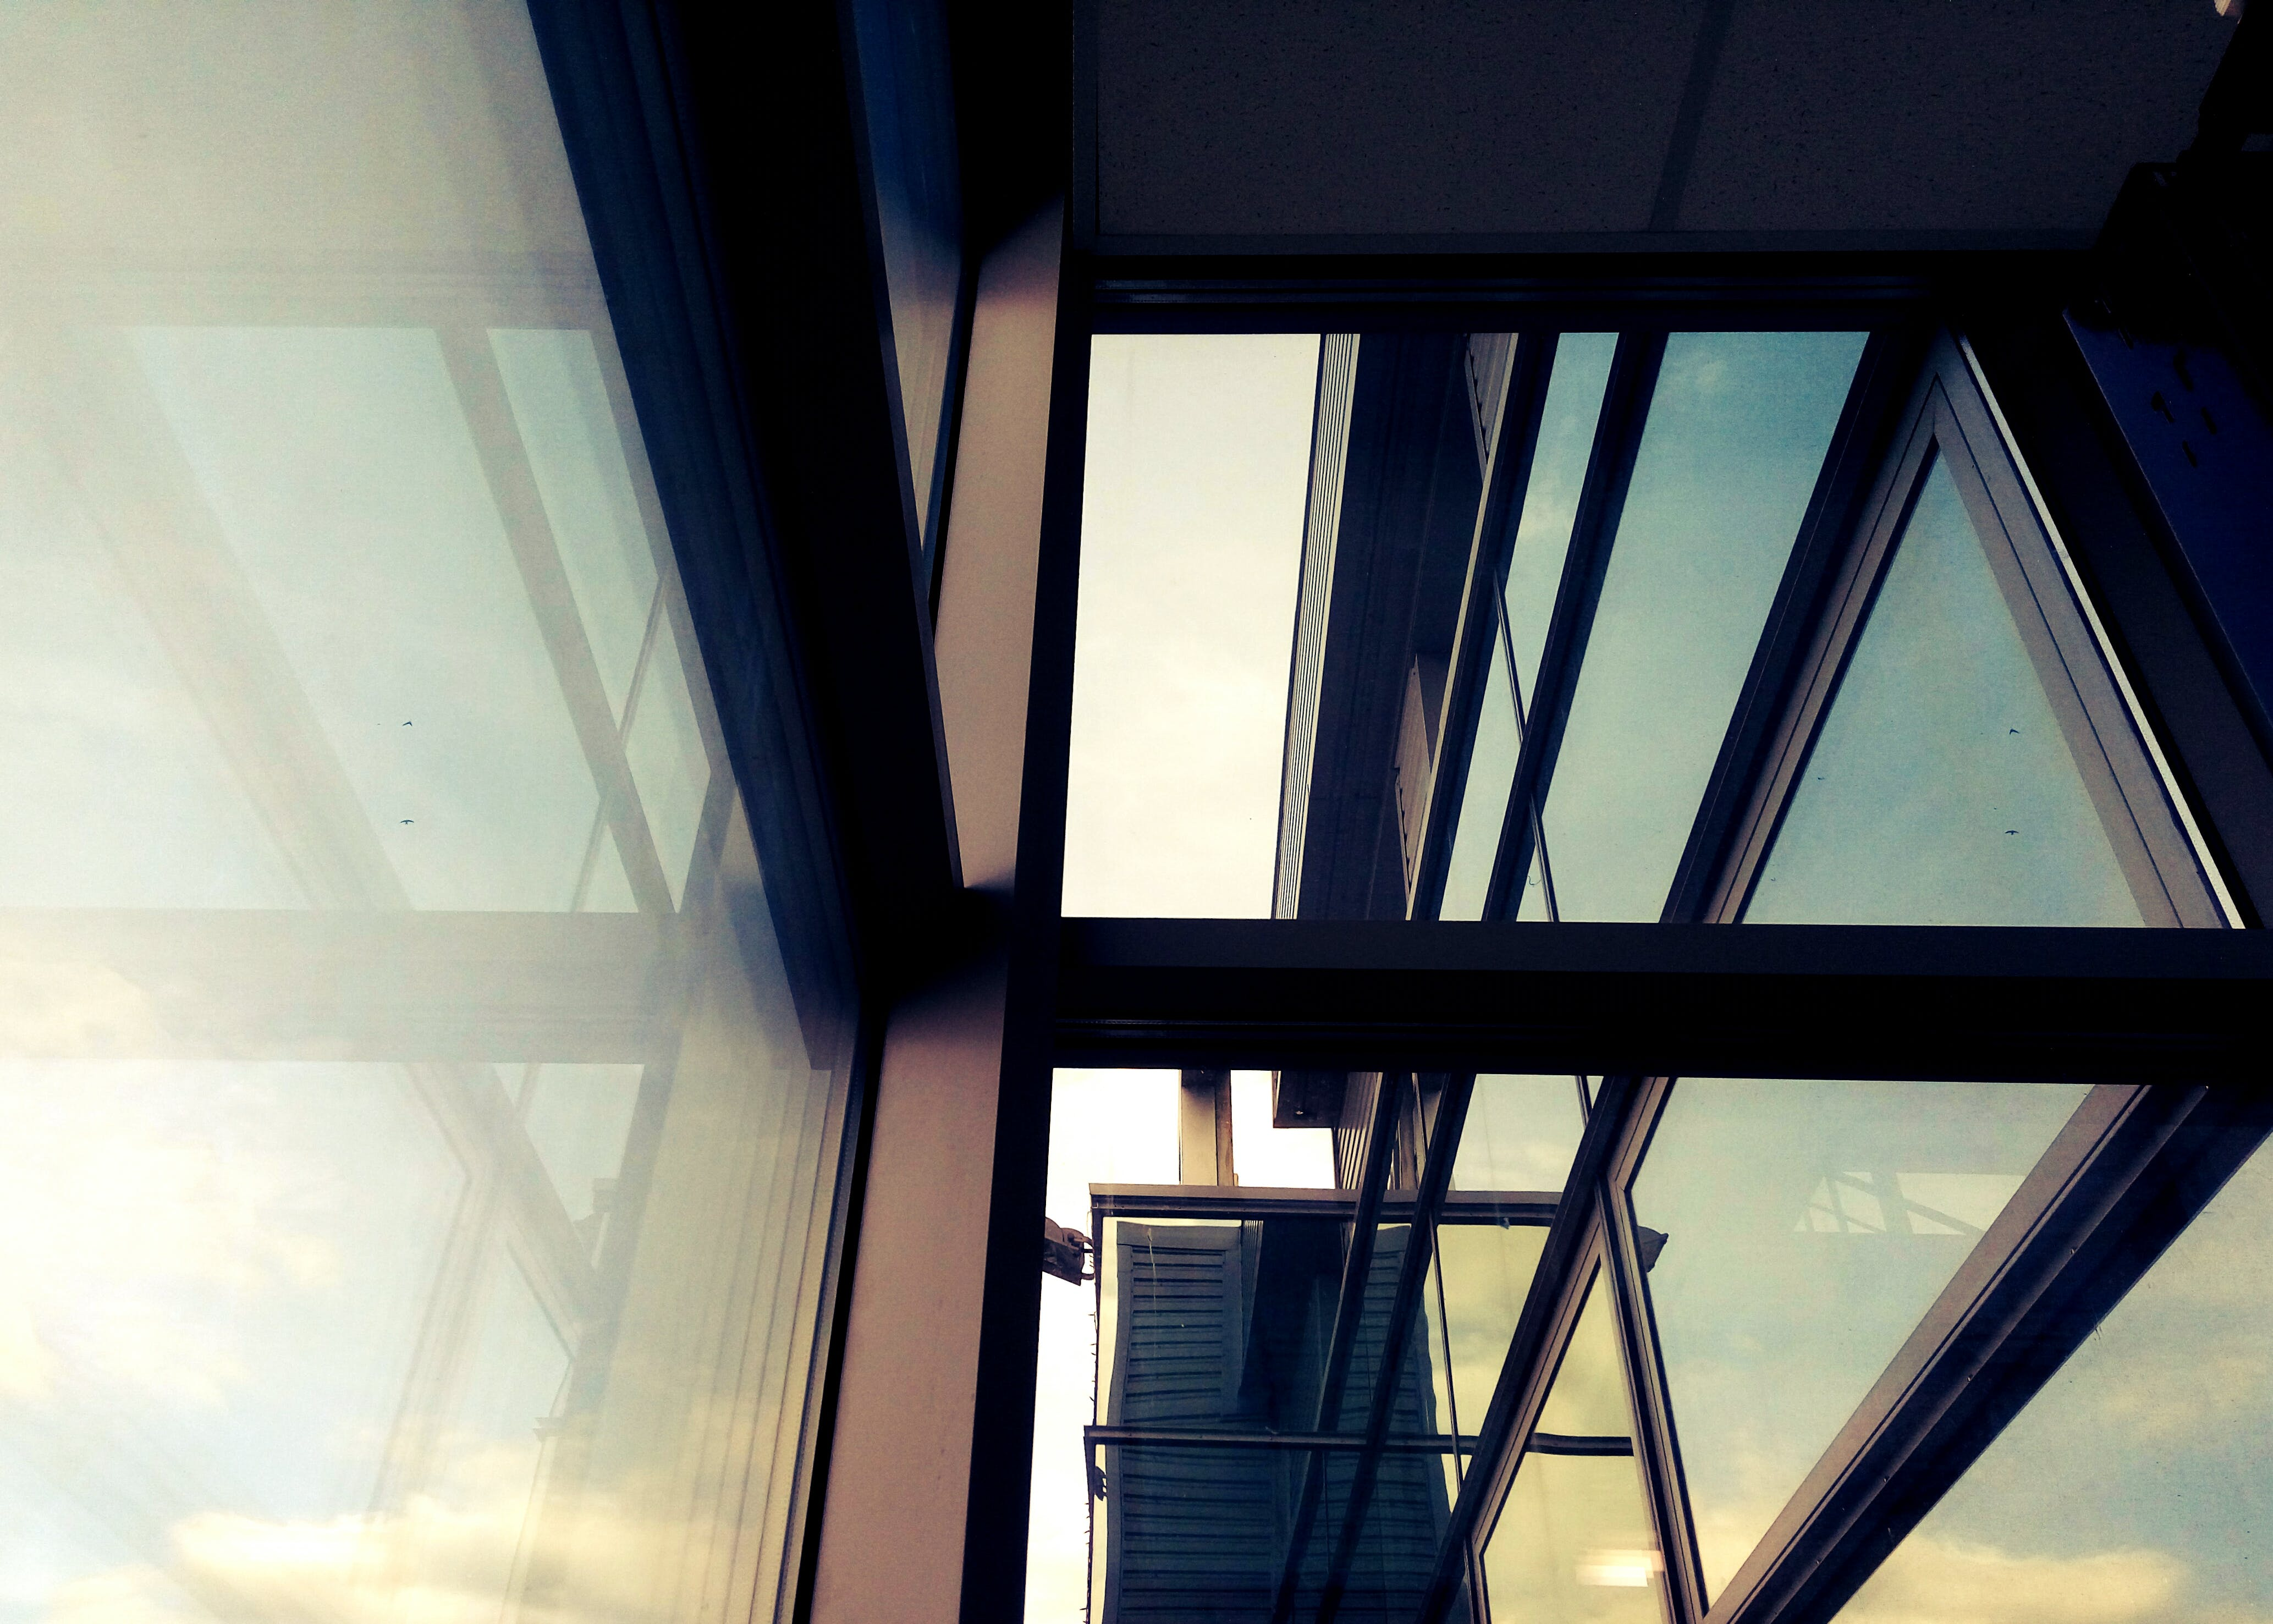 Free stock photo of glass, windows, reflection, steel